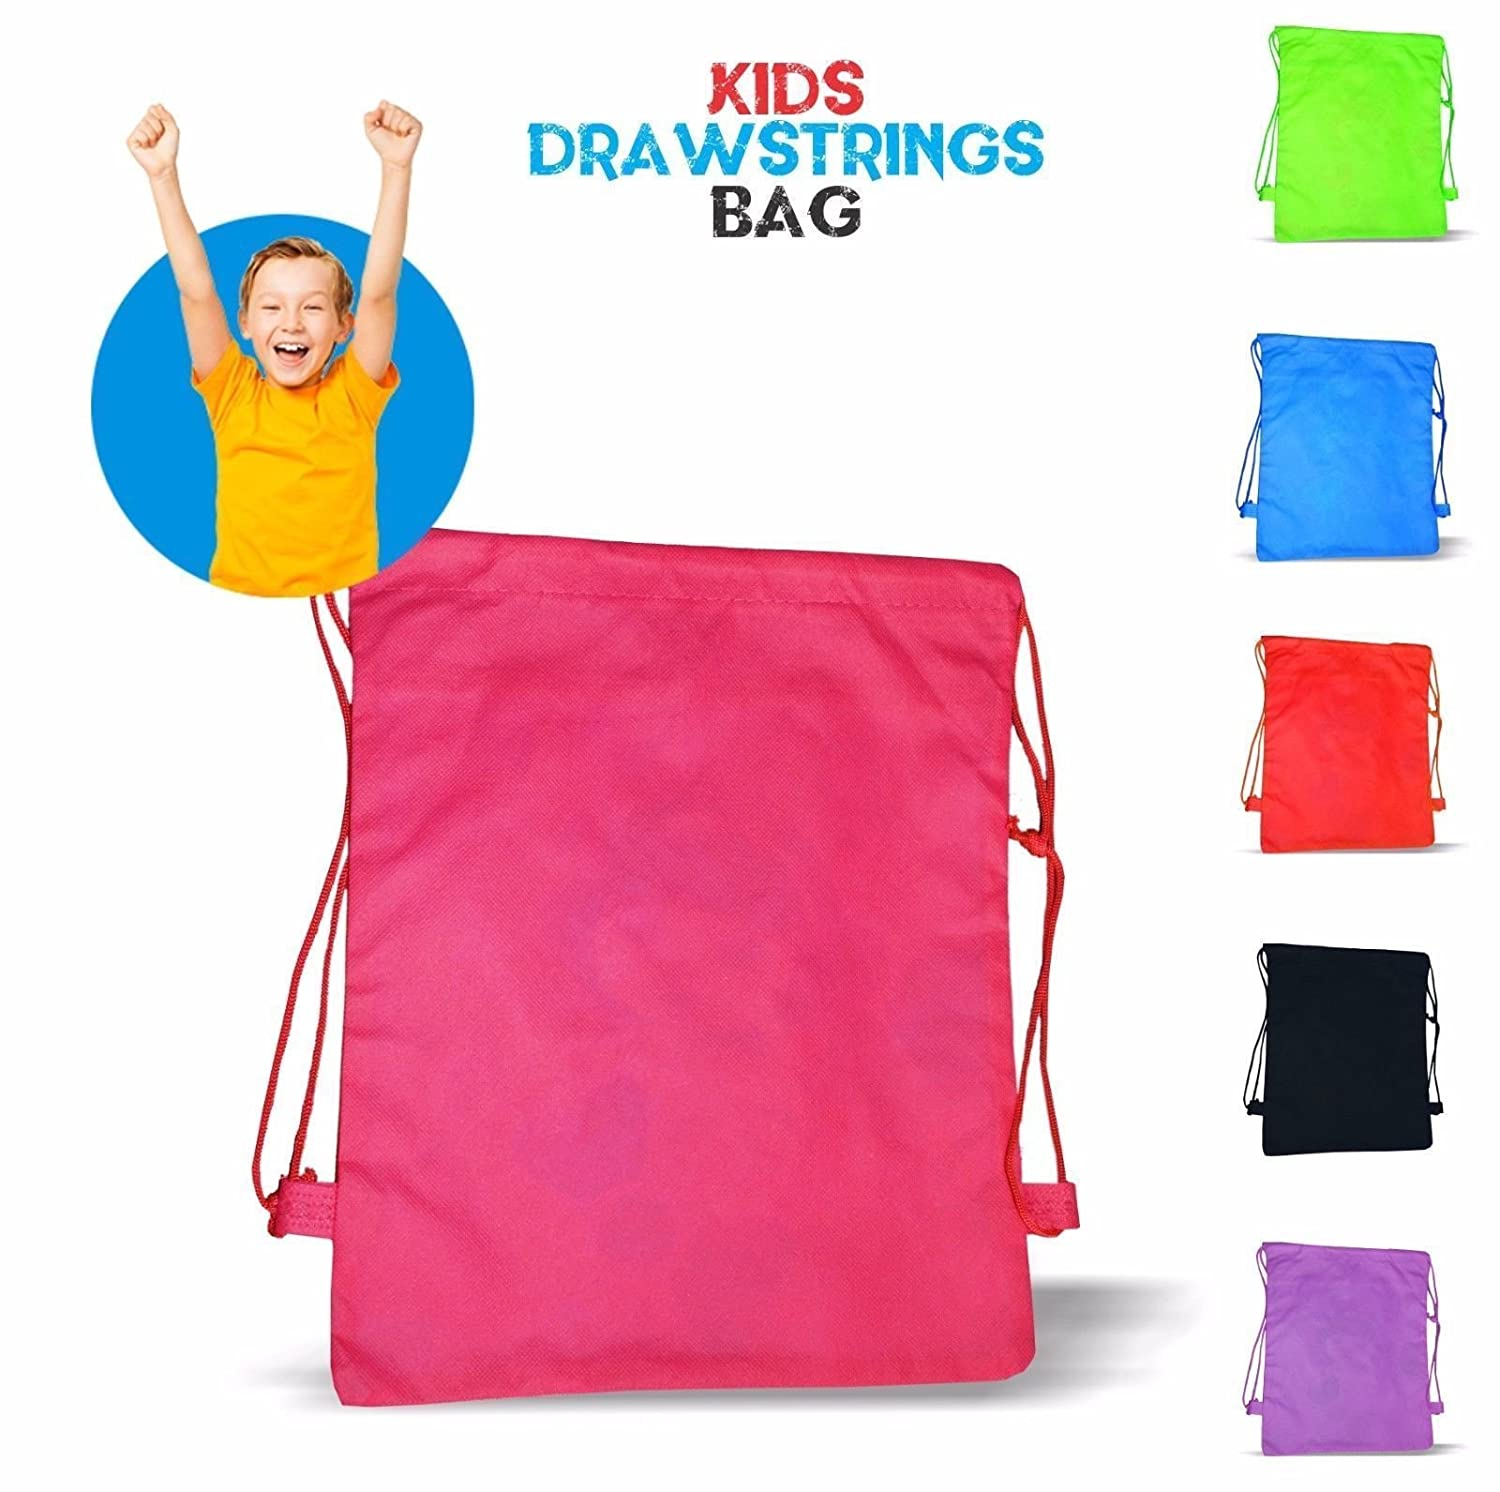 Thai Mad New Styl-Kids New Plain Bag Gym Bag Pump Bag Sports School Drawstring Boys Girls (Red)